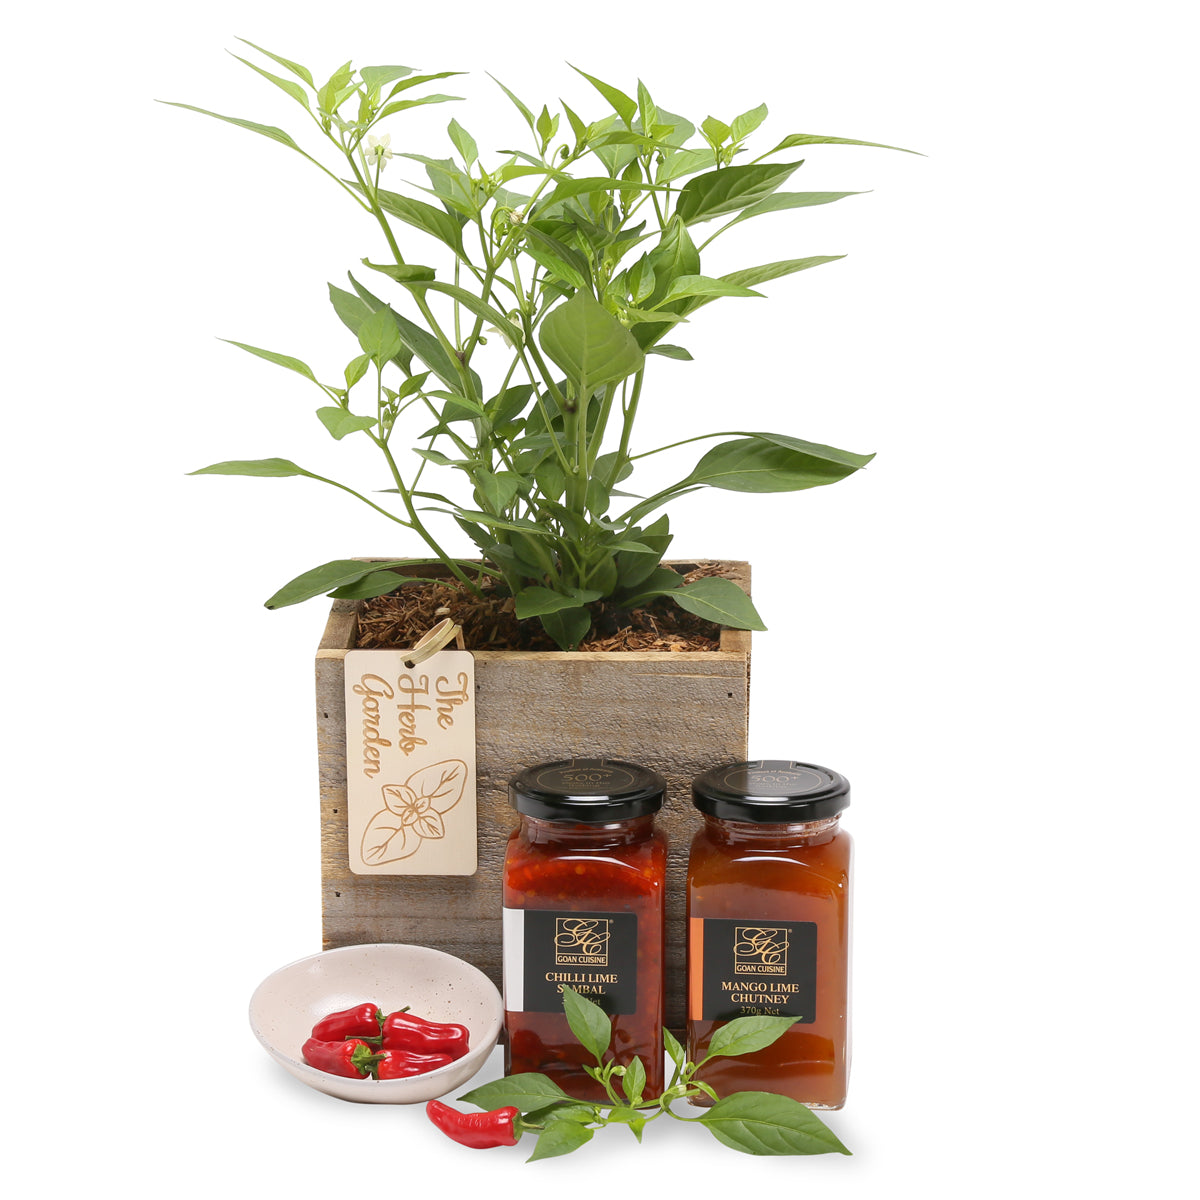 Goan Chilli gift box